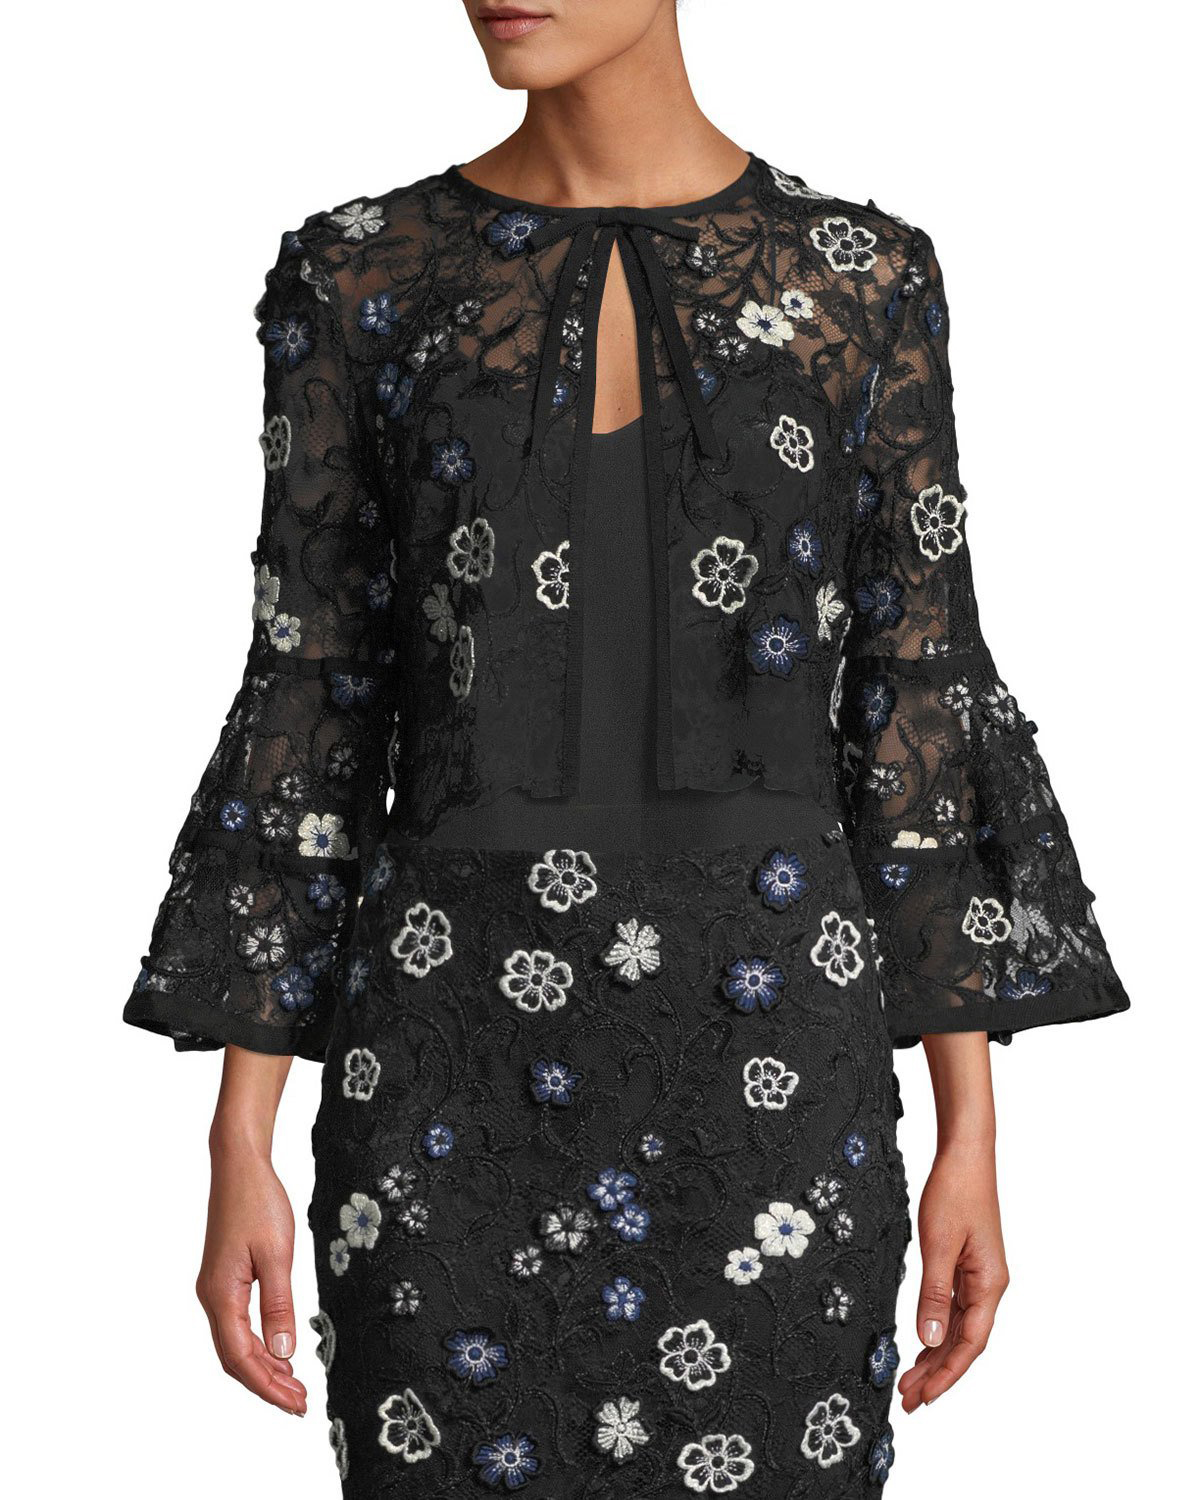 mother of the bride dress Embroidery Bolero Jacket black floral